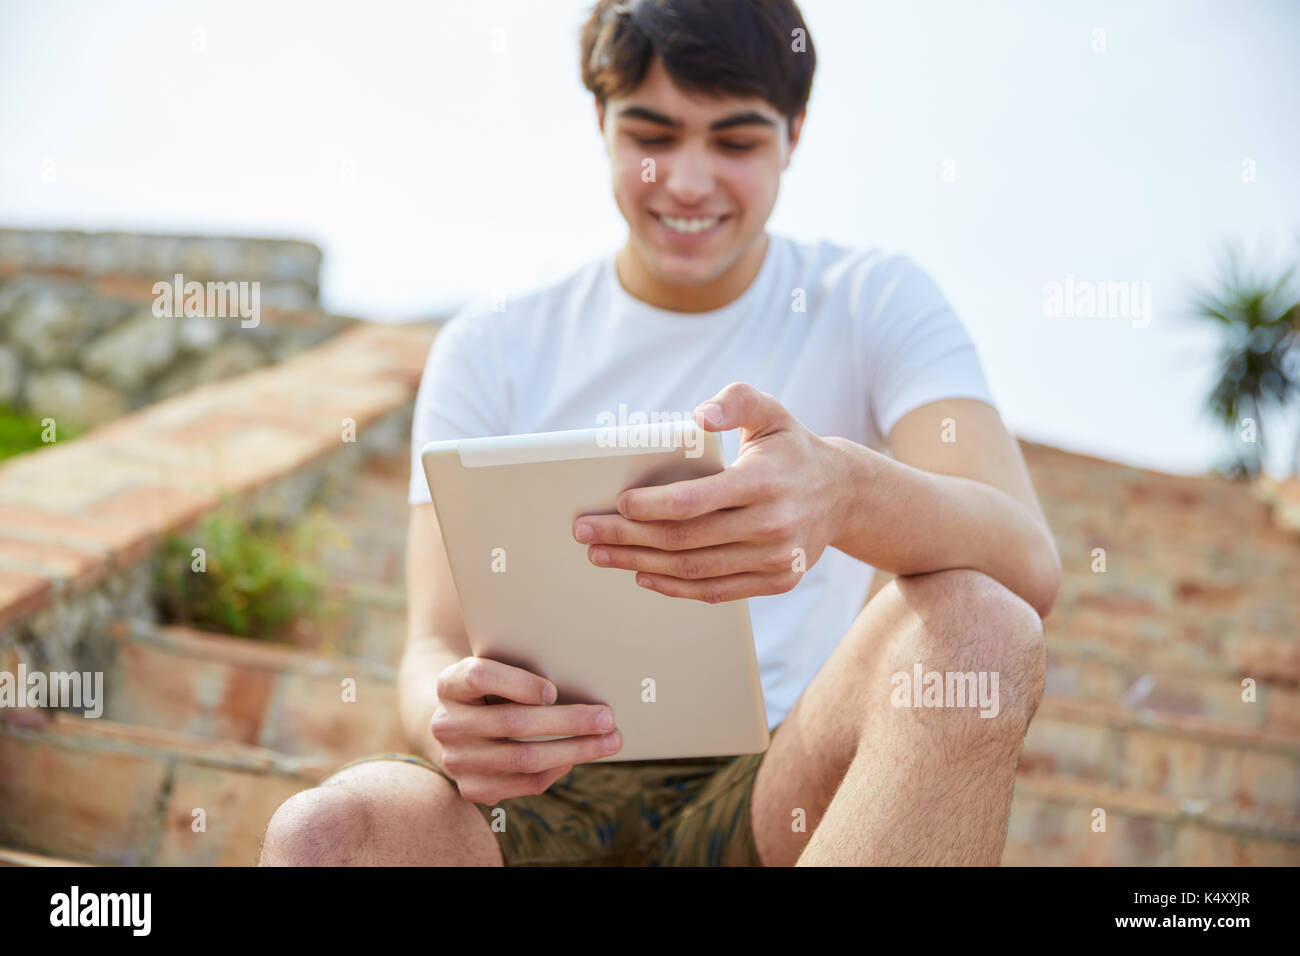 Portrait of young happy man sitting on stairs outside using tablet - Stock Image